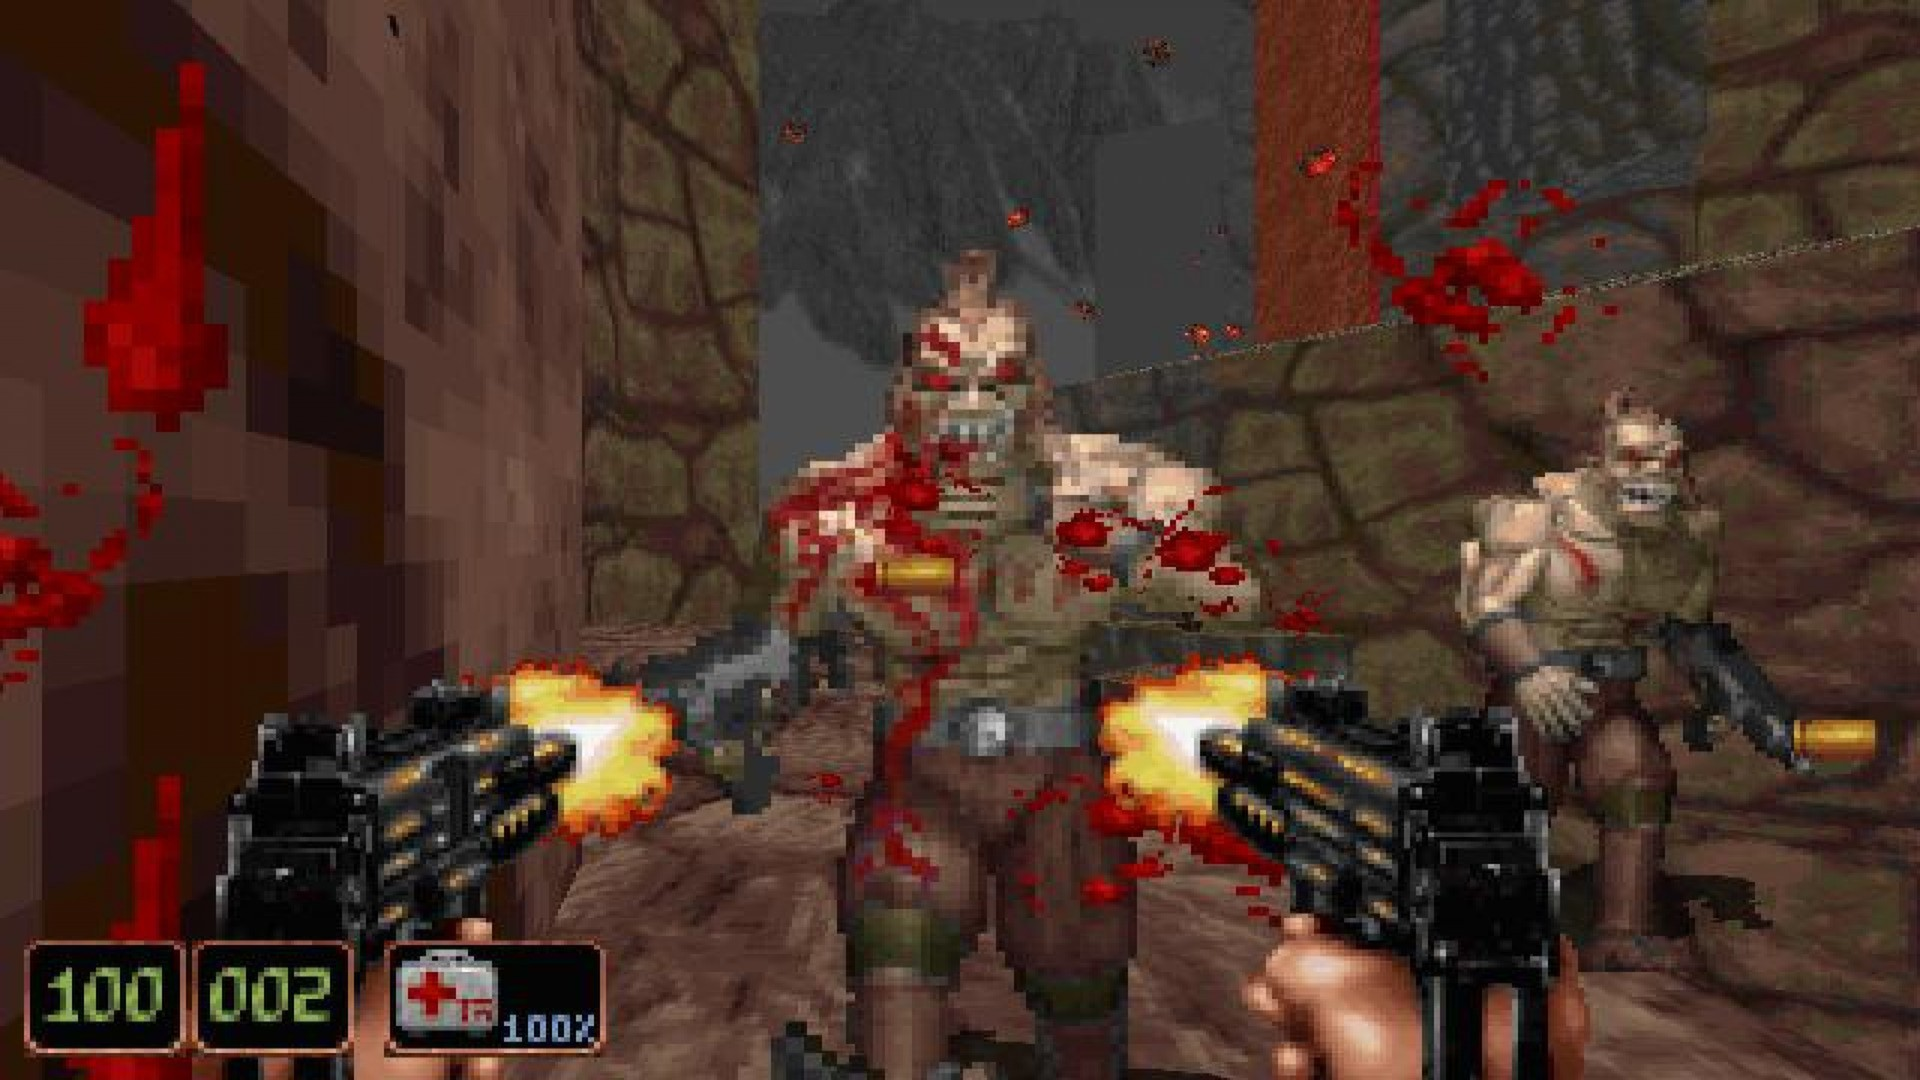 © 3D Realms / Devolver Digital